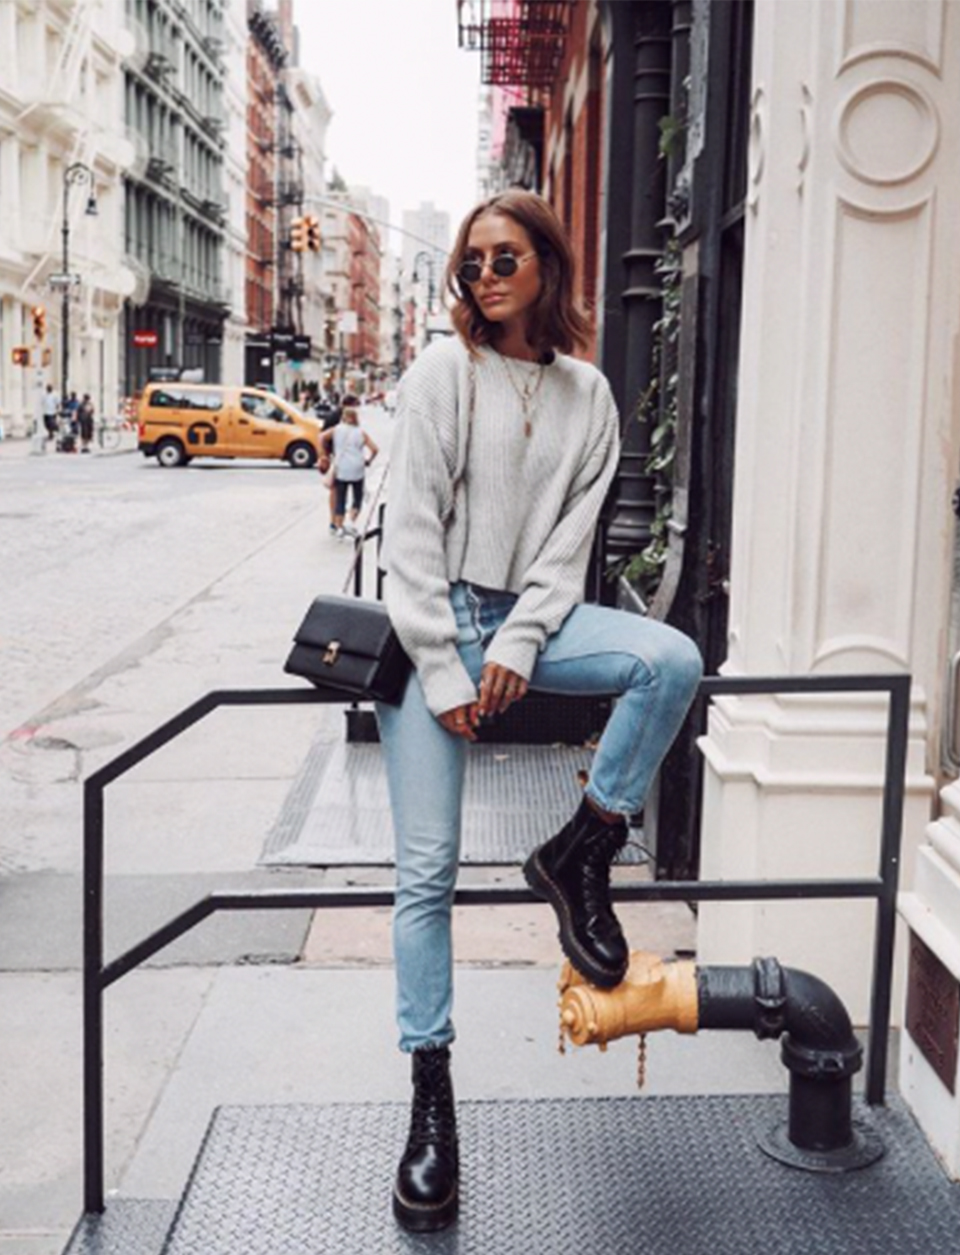 Jelena Shows Us How To Style Her Favourite Jeans With Biker Boots A Simple Knit Less Or Luxe